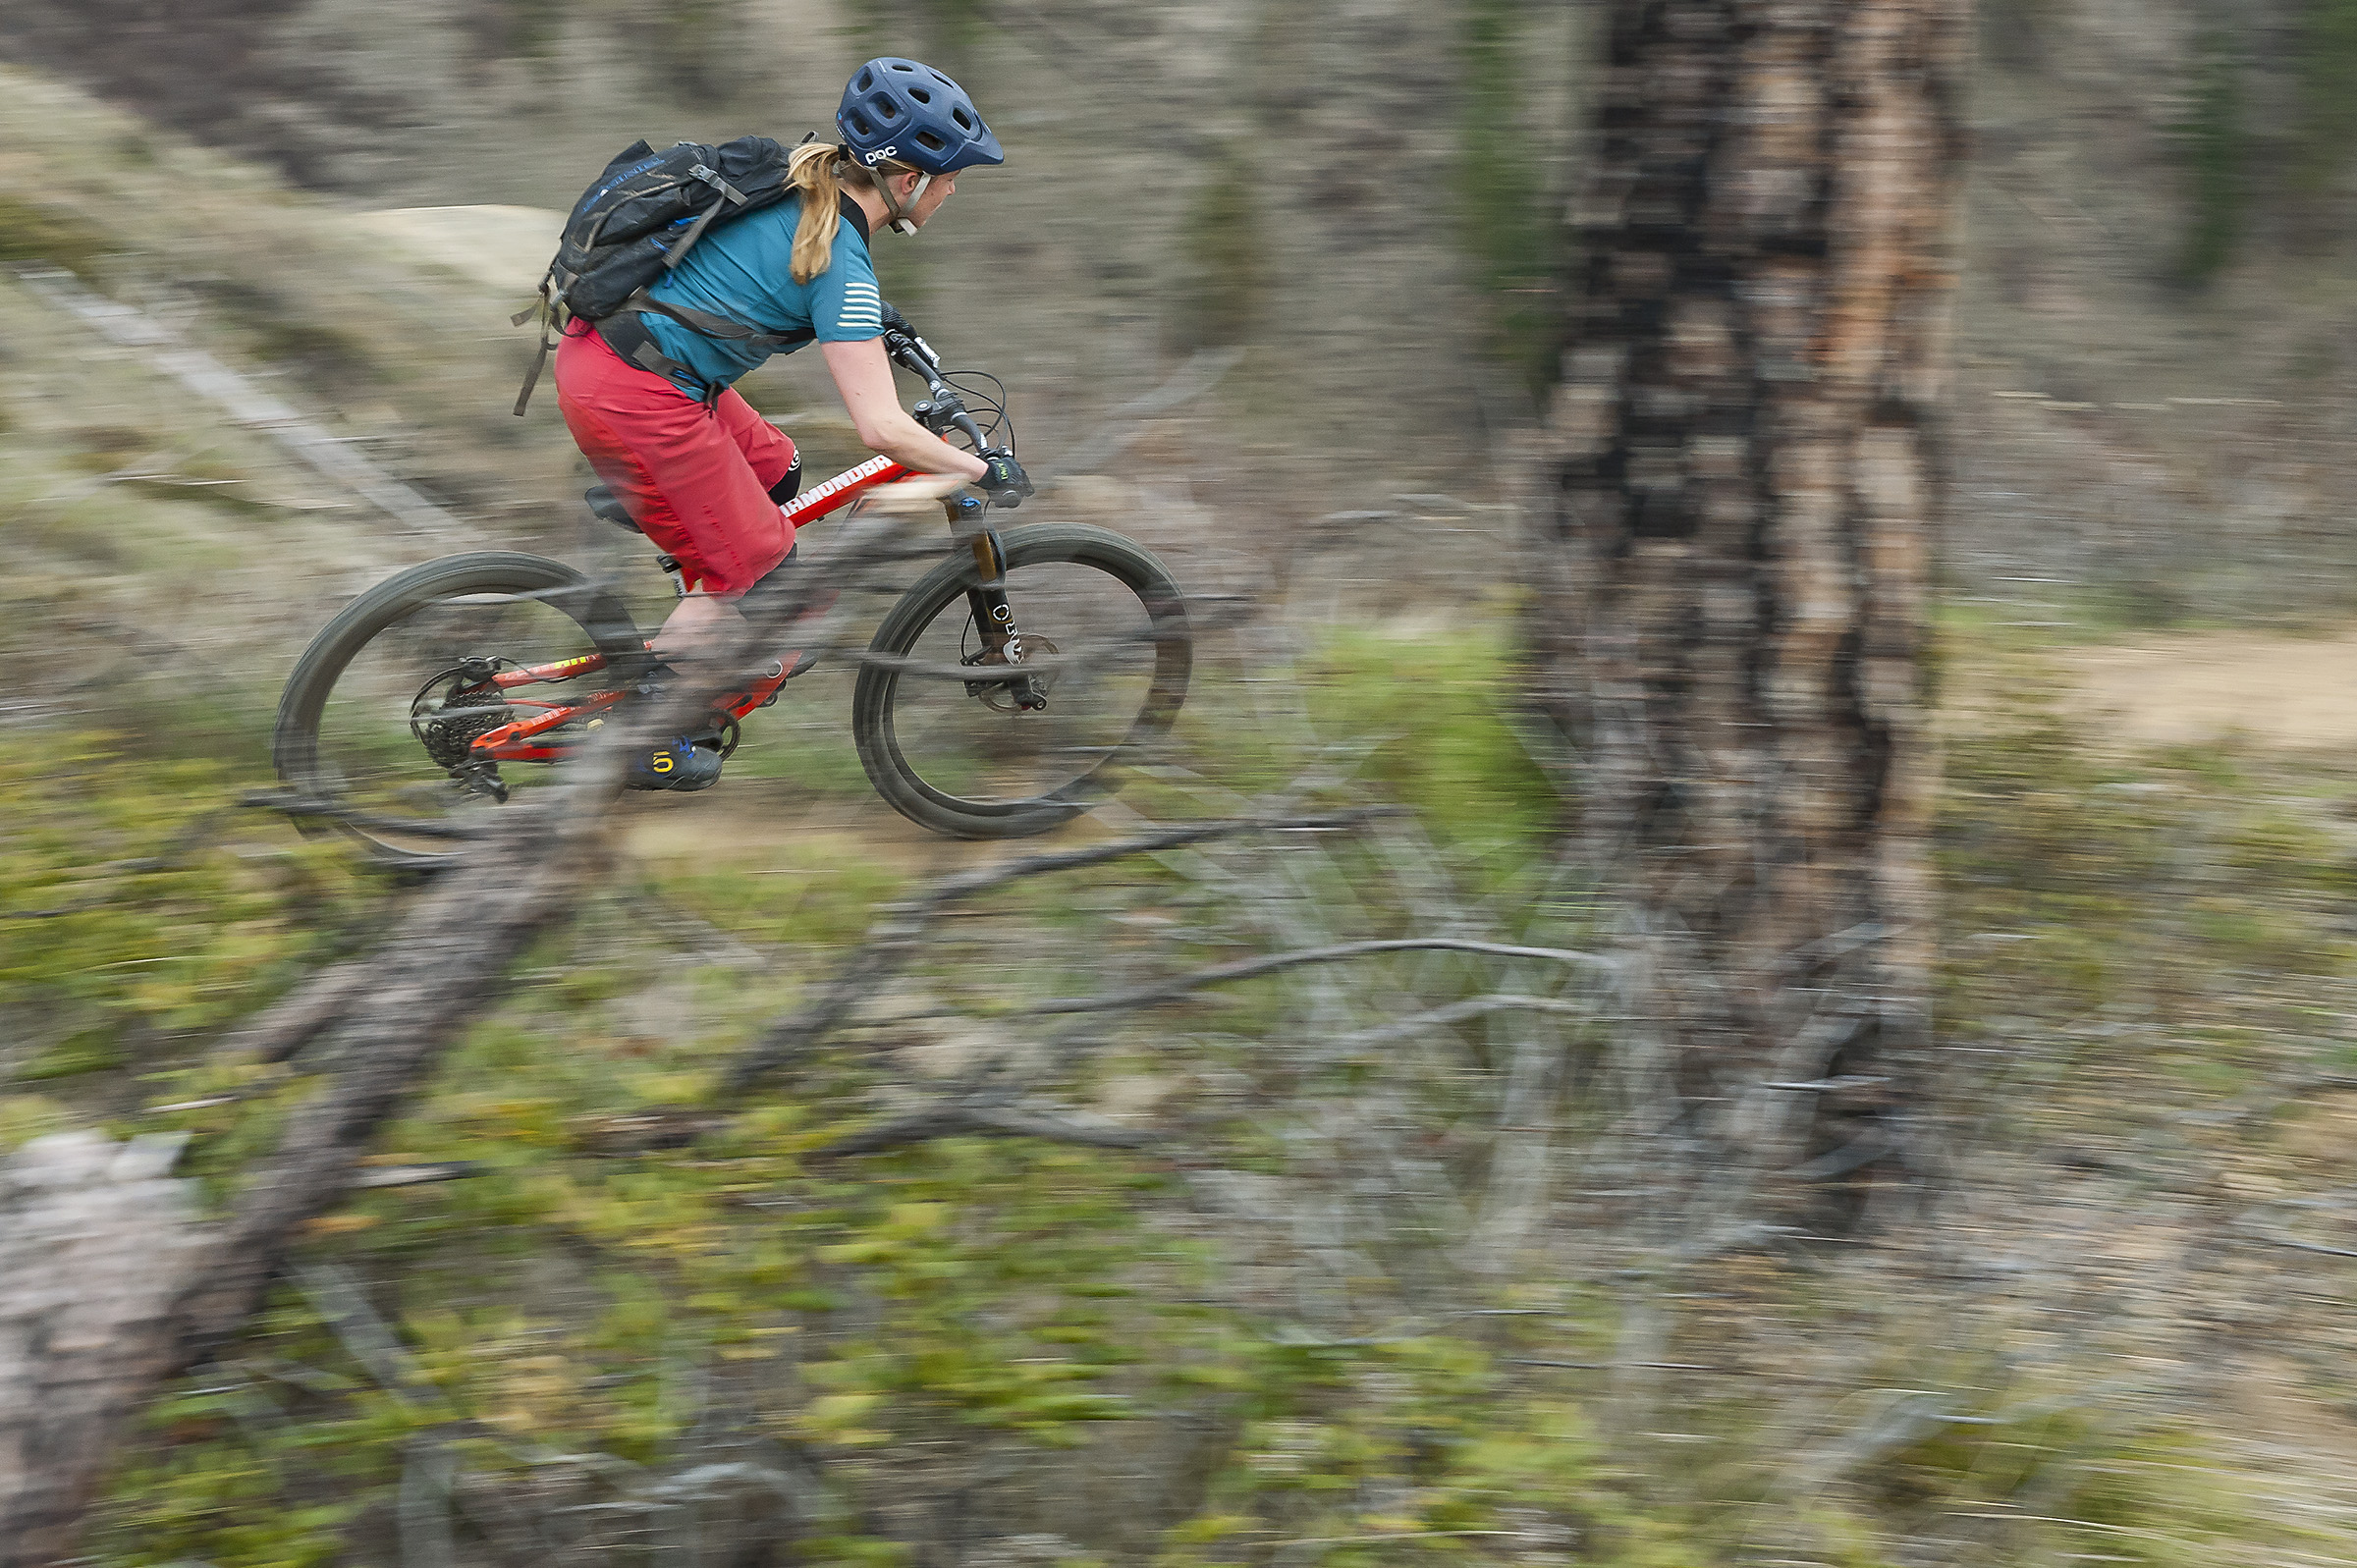 031115_Leavenworth_Bike_506